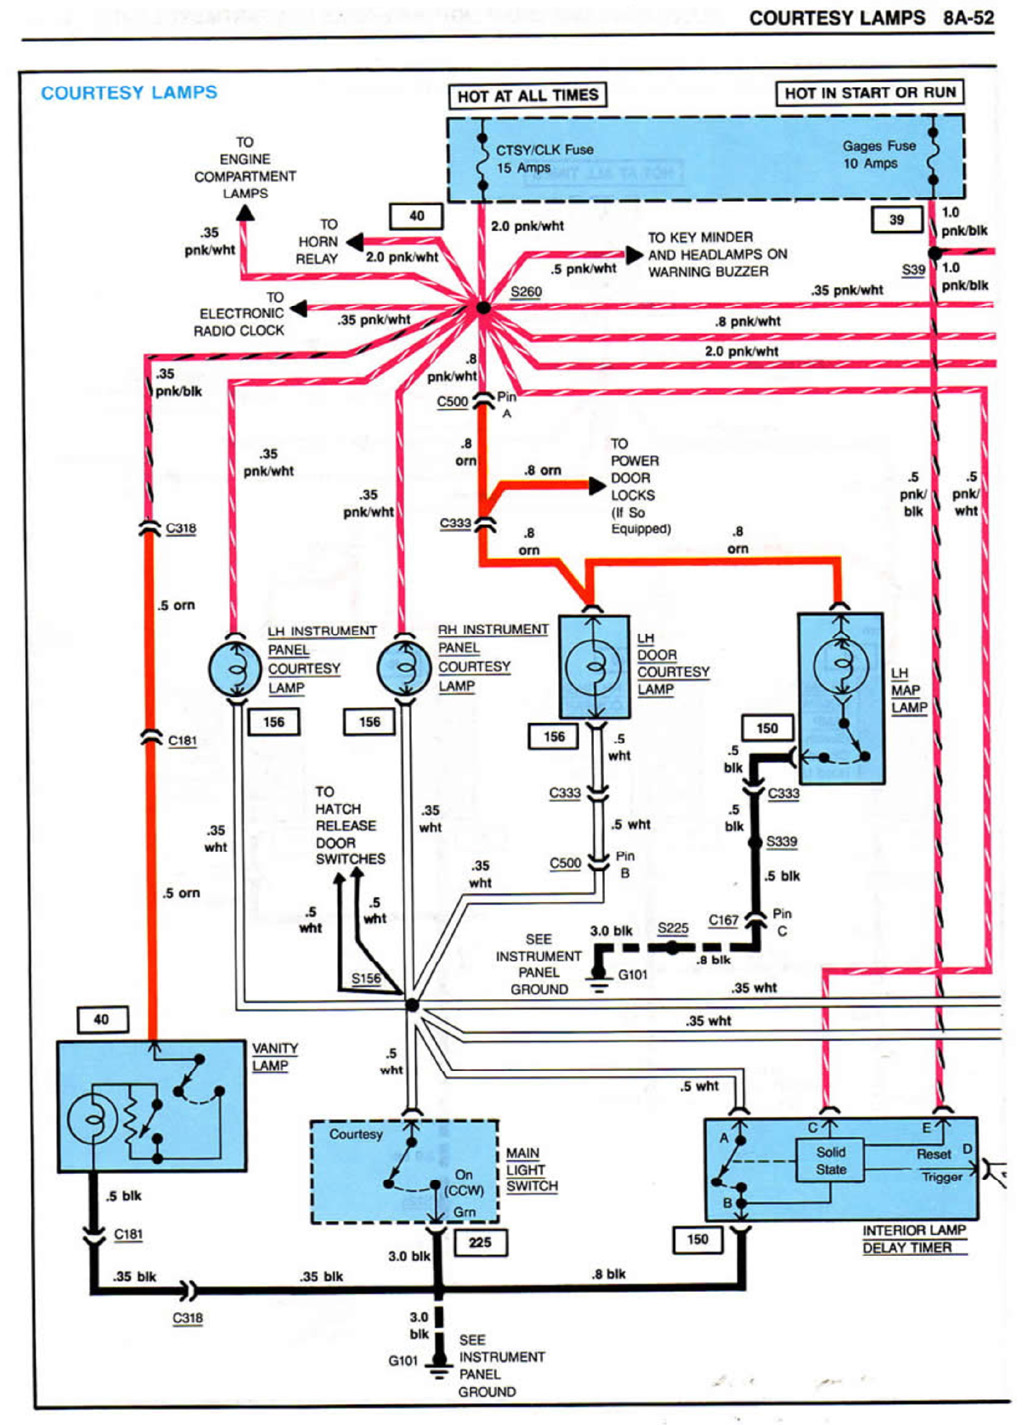 1984_Corvette_Courtesy_Lamps1 2001 corvette wiring diagram c5 corvette stereo wiring diagram Aftermarket Radio Wiring Harness at soozxer.org